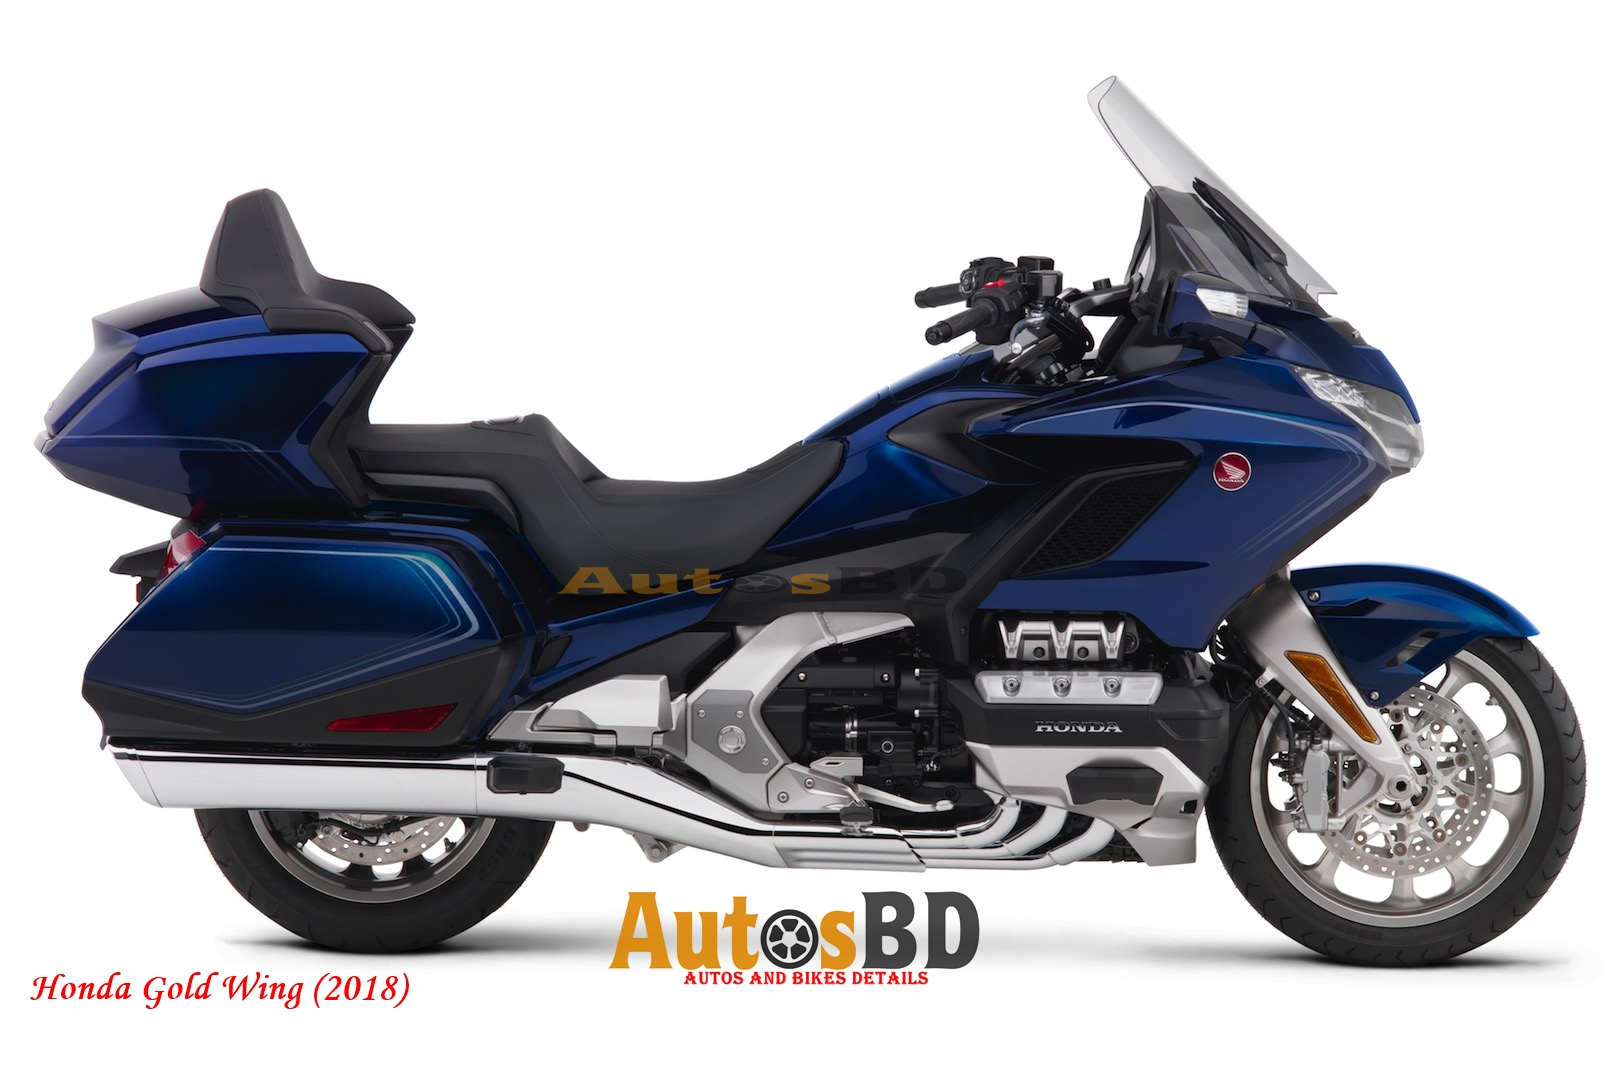 Honda Gold Wing top speed Archives - Autos and Bikes Details